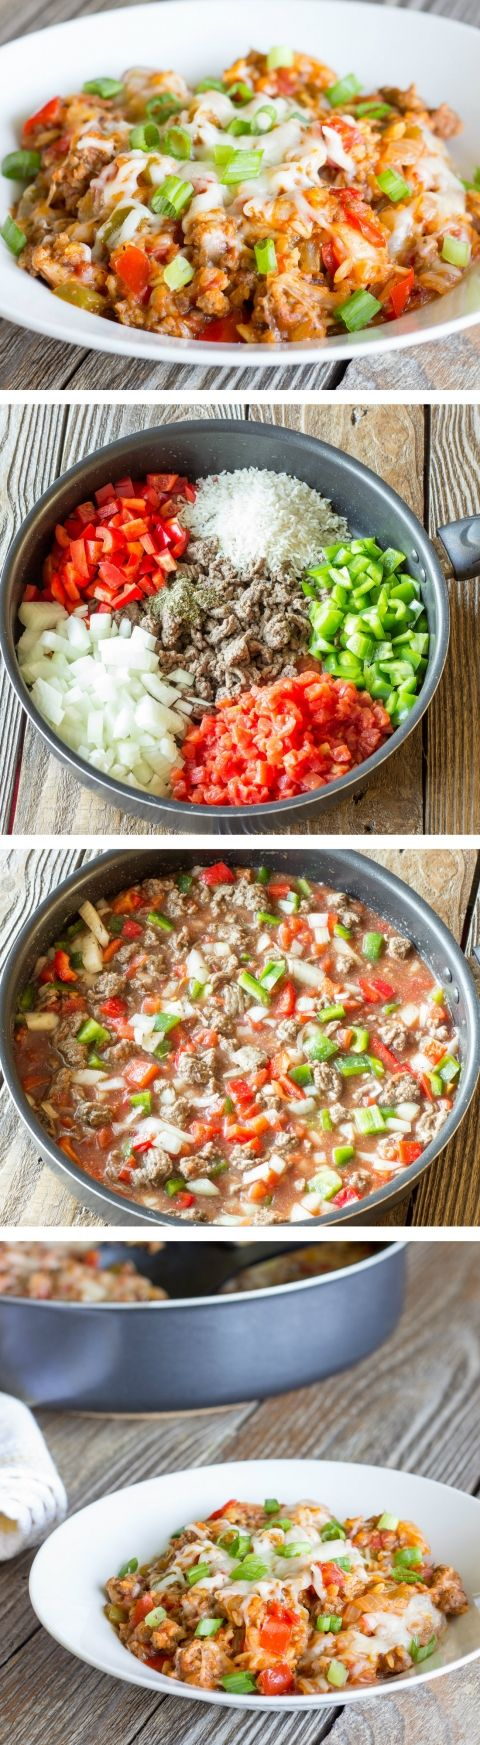 One Pot Stuffed Pepper Skillet